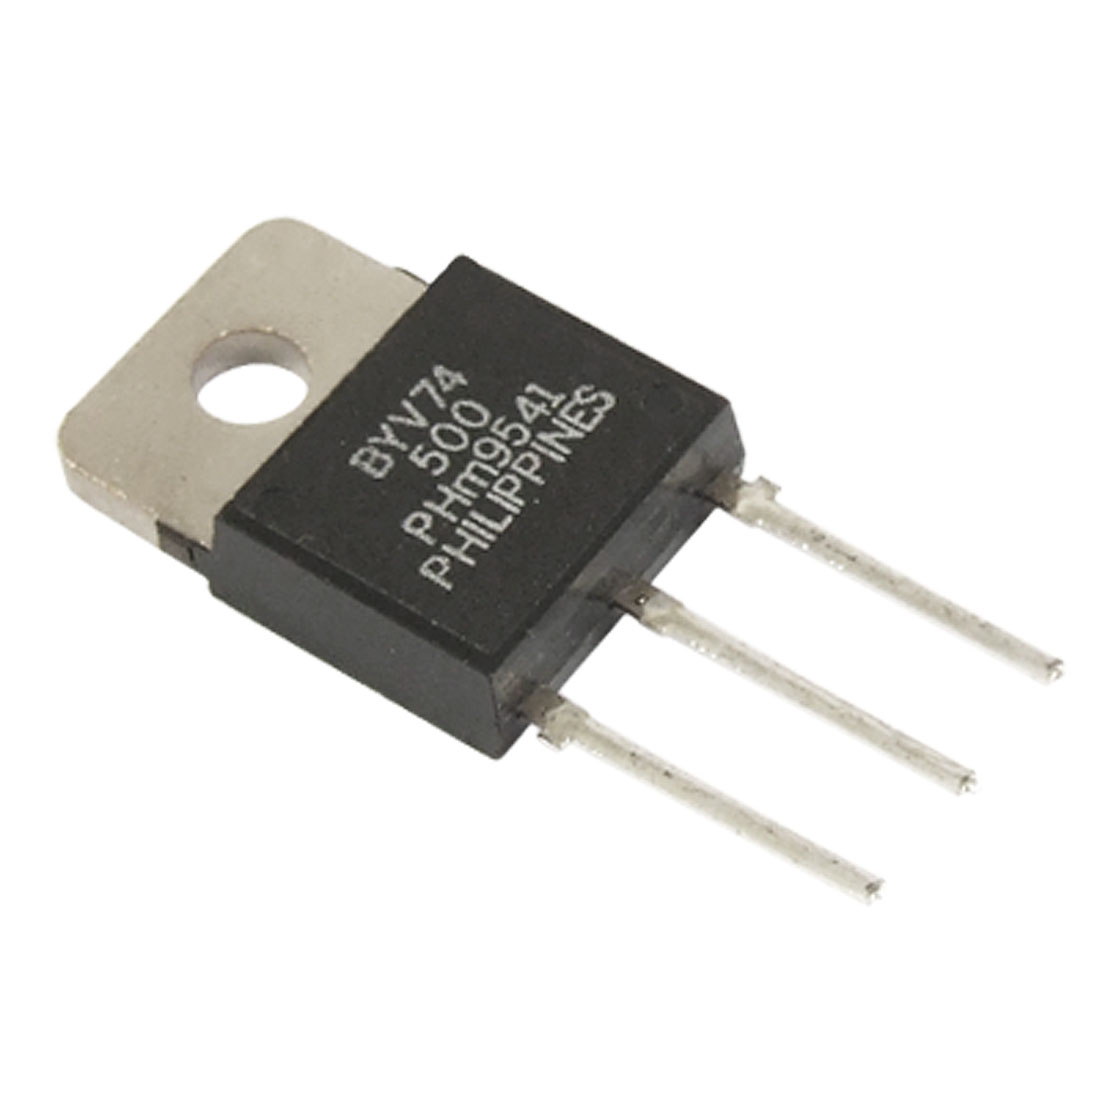 Electronic Parts BYV74-500 3 Terminals 500V 30A Ultrafast Dual Rectifier Diode